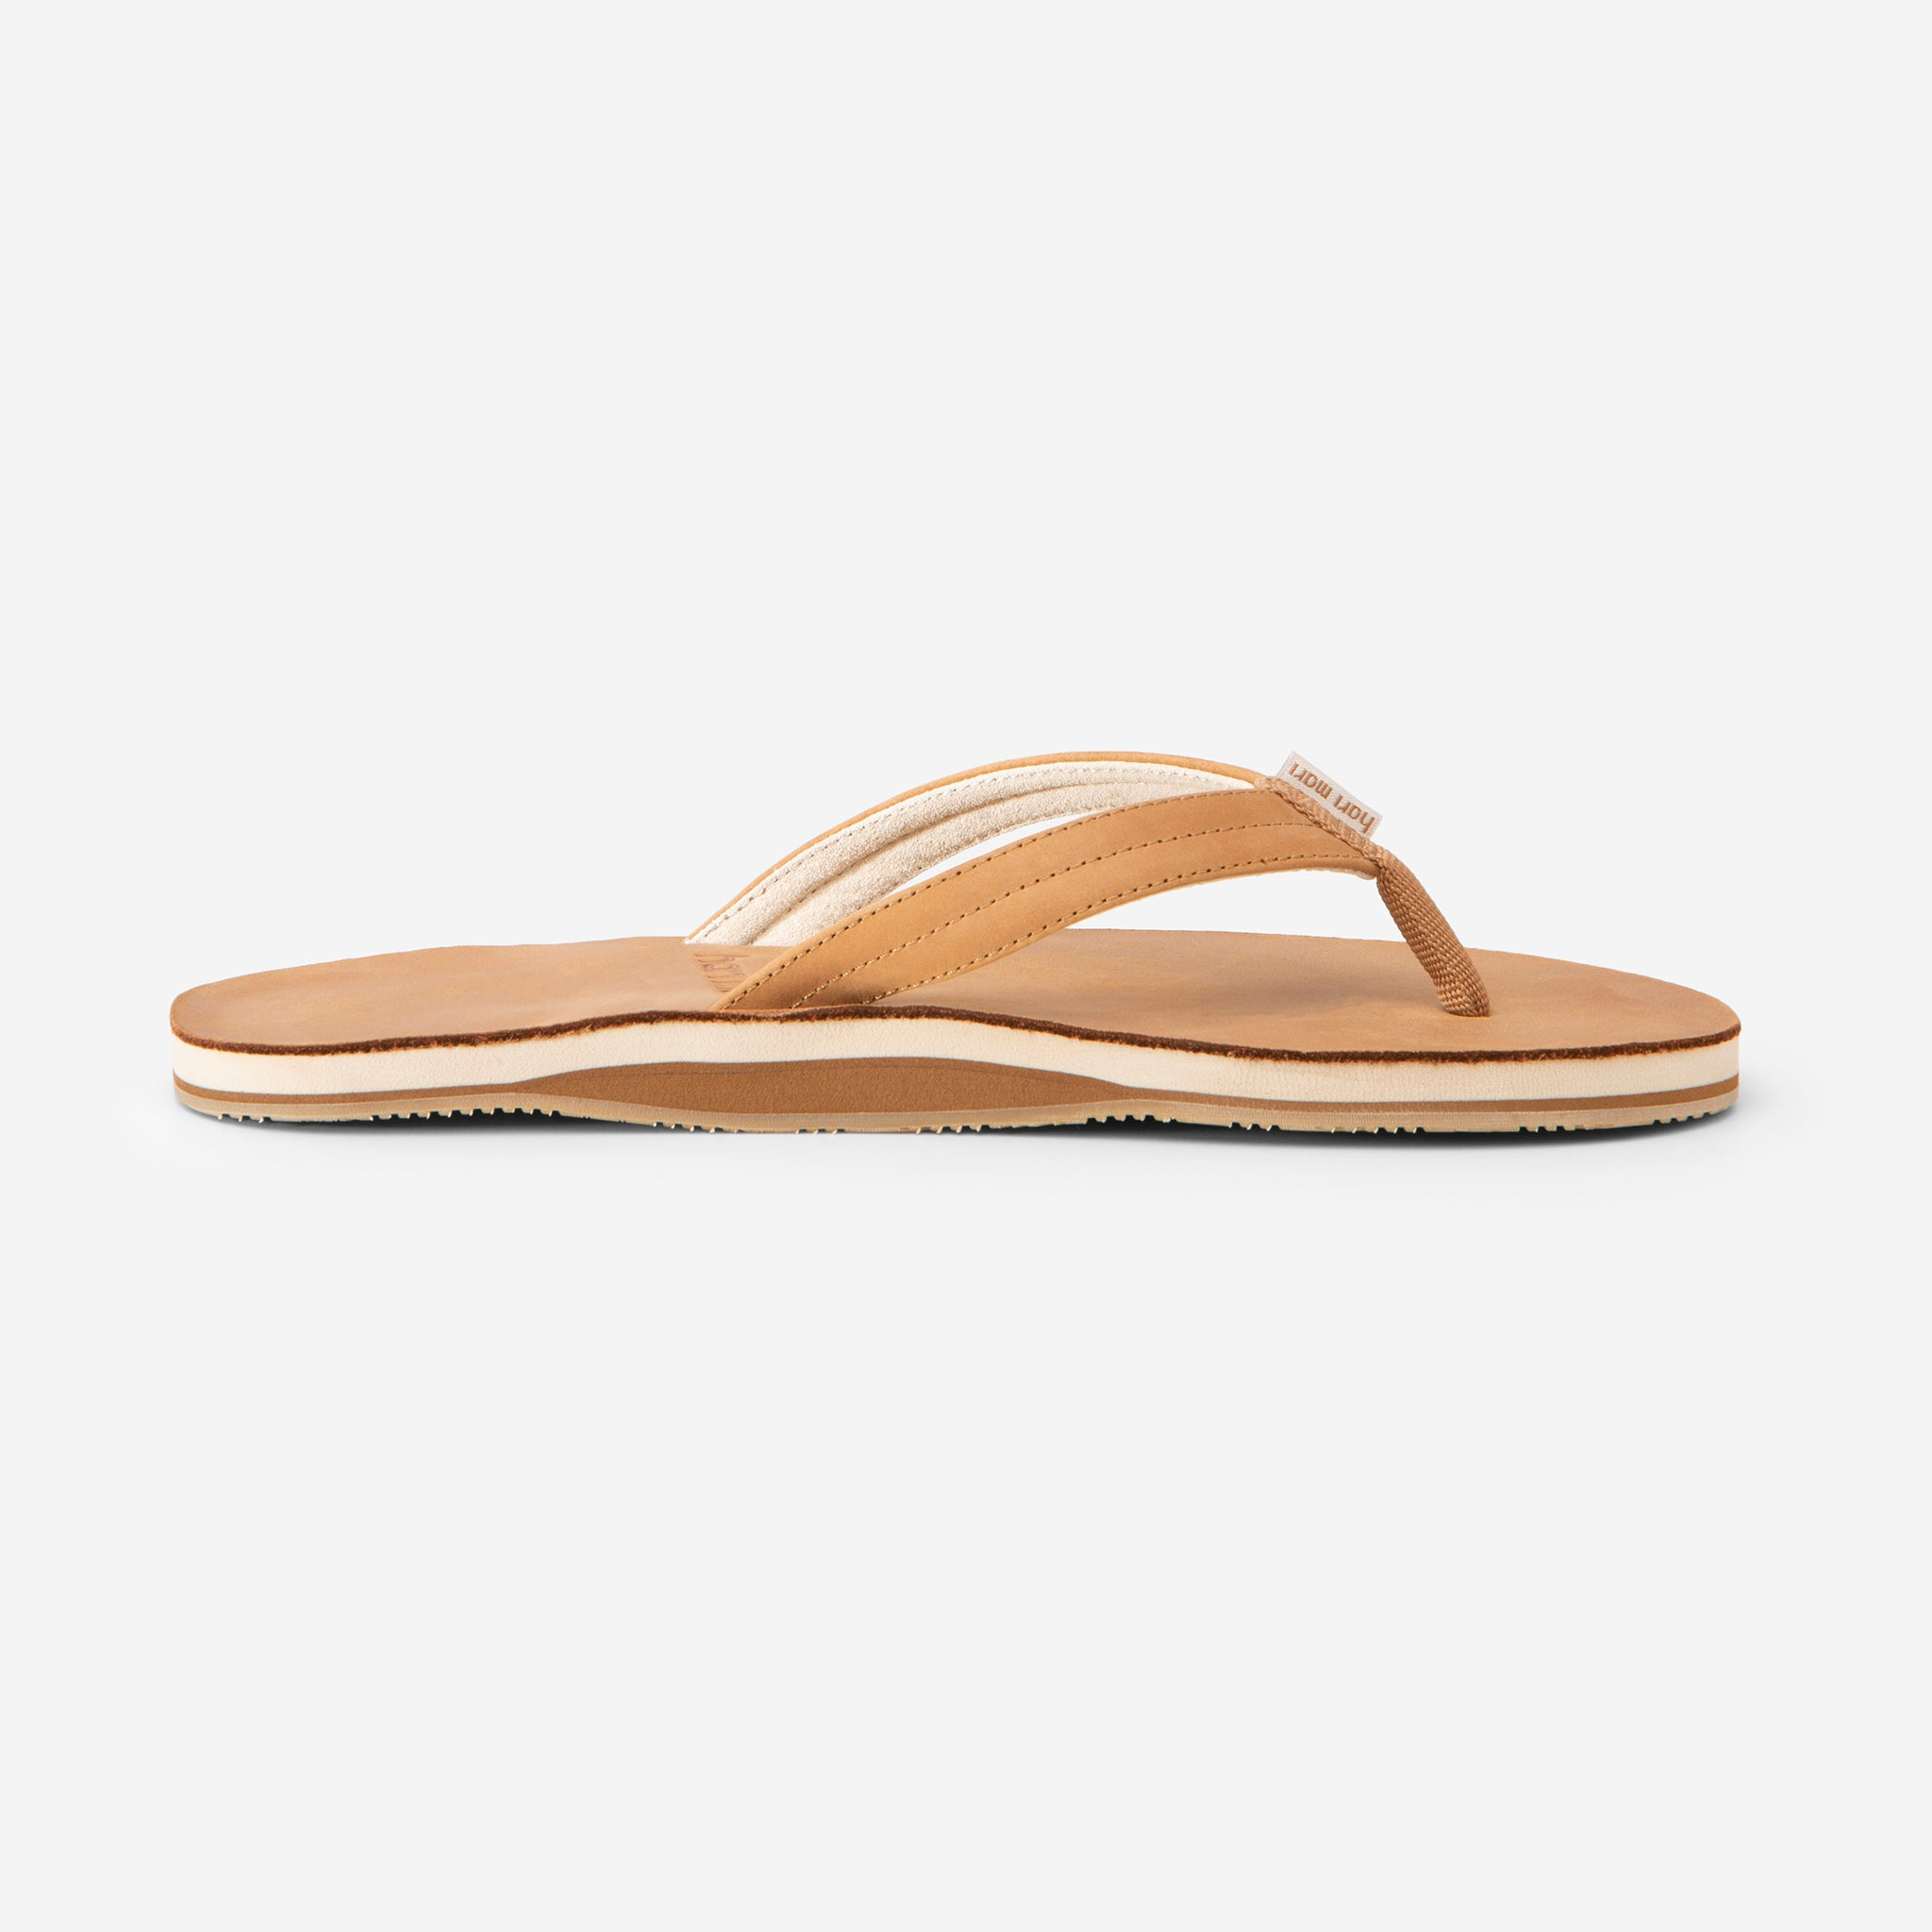 Lakes - Women's - Tan/Natural - Side View